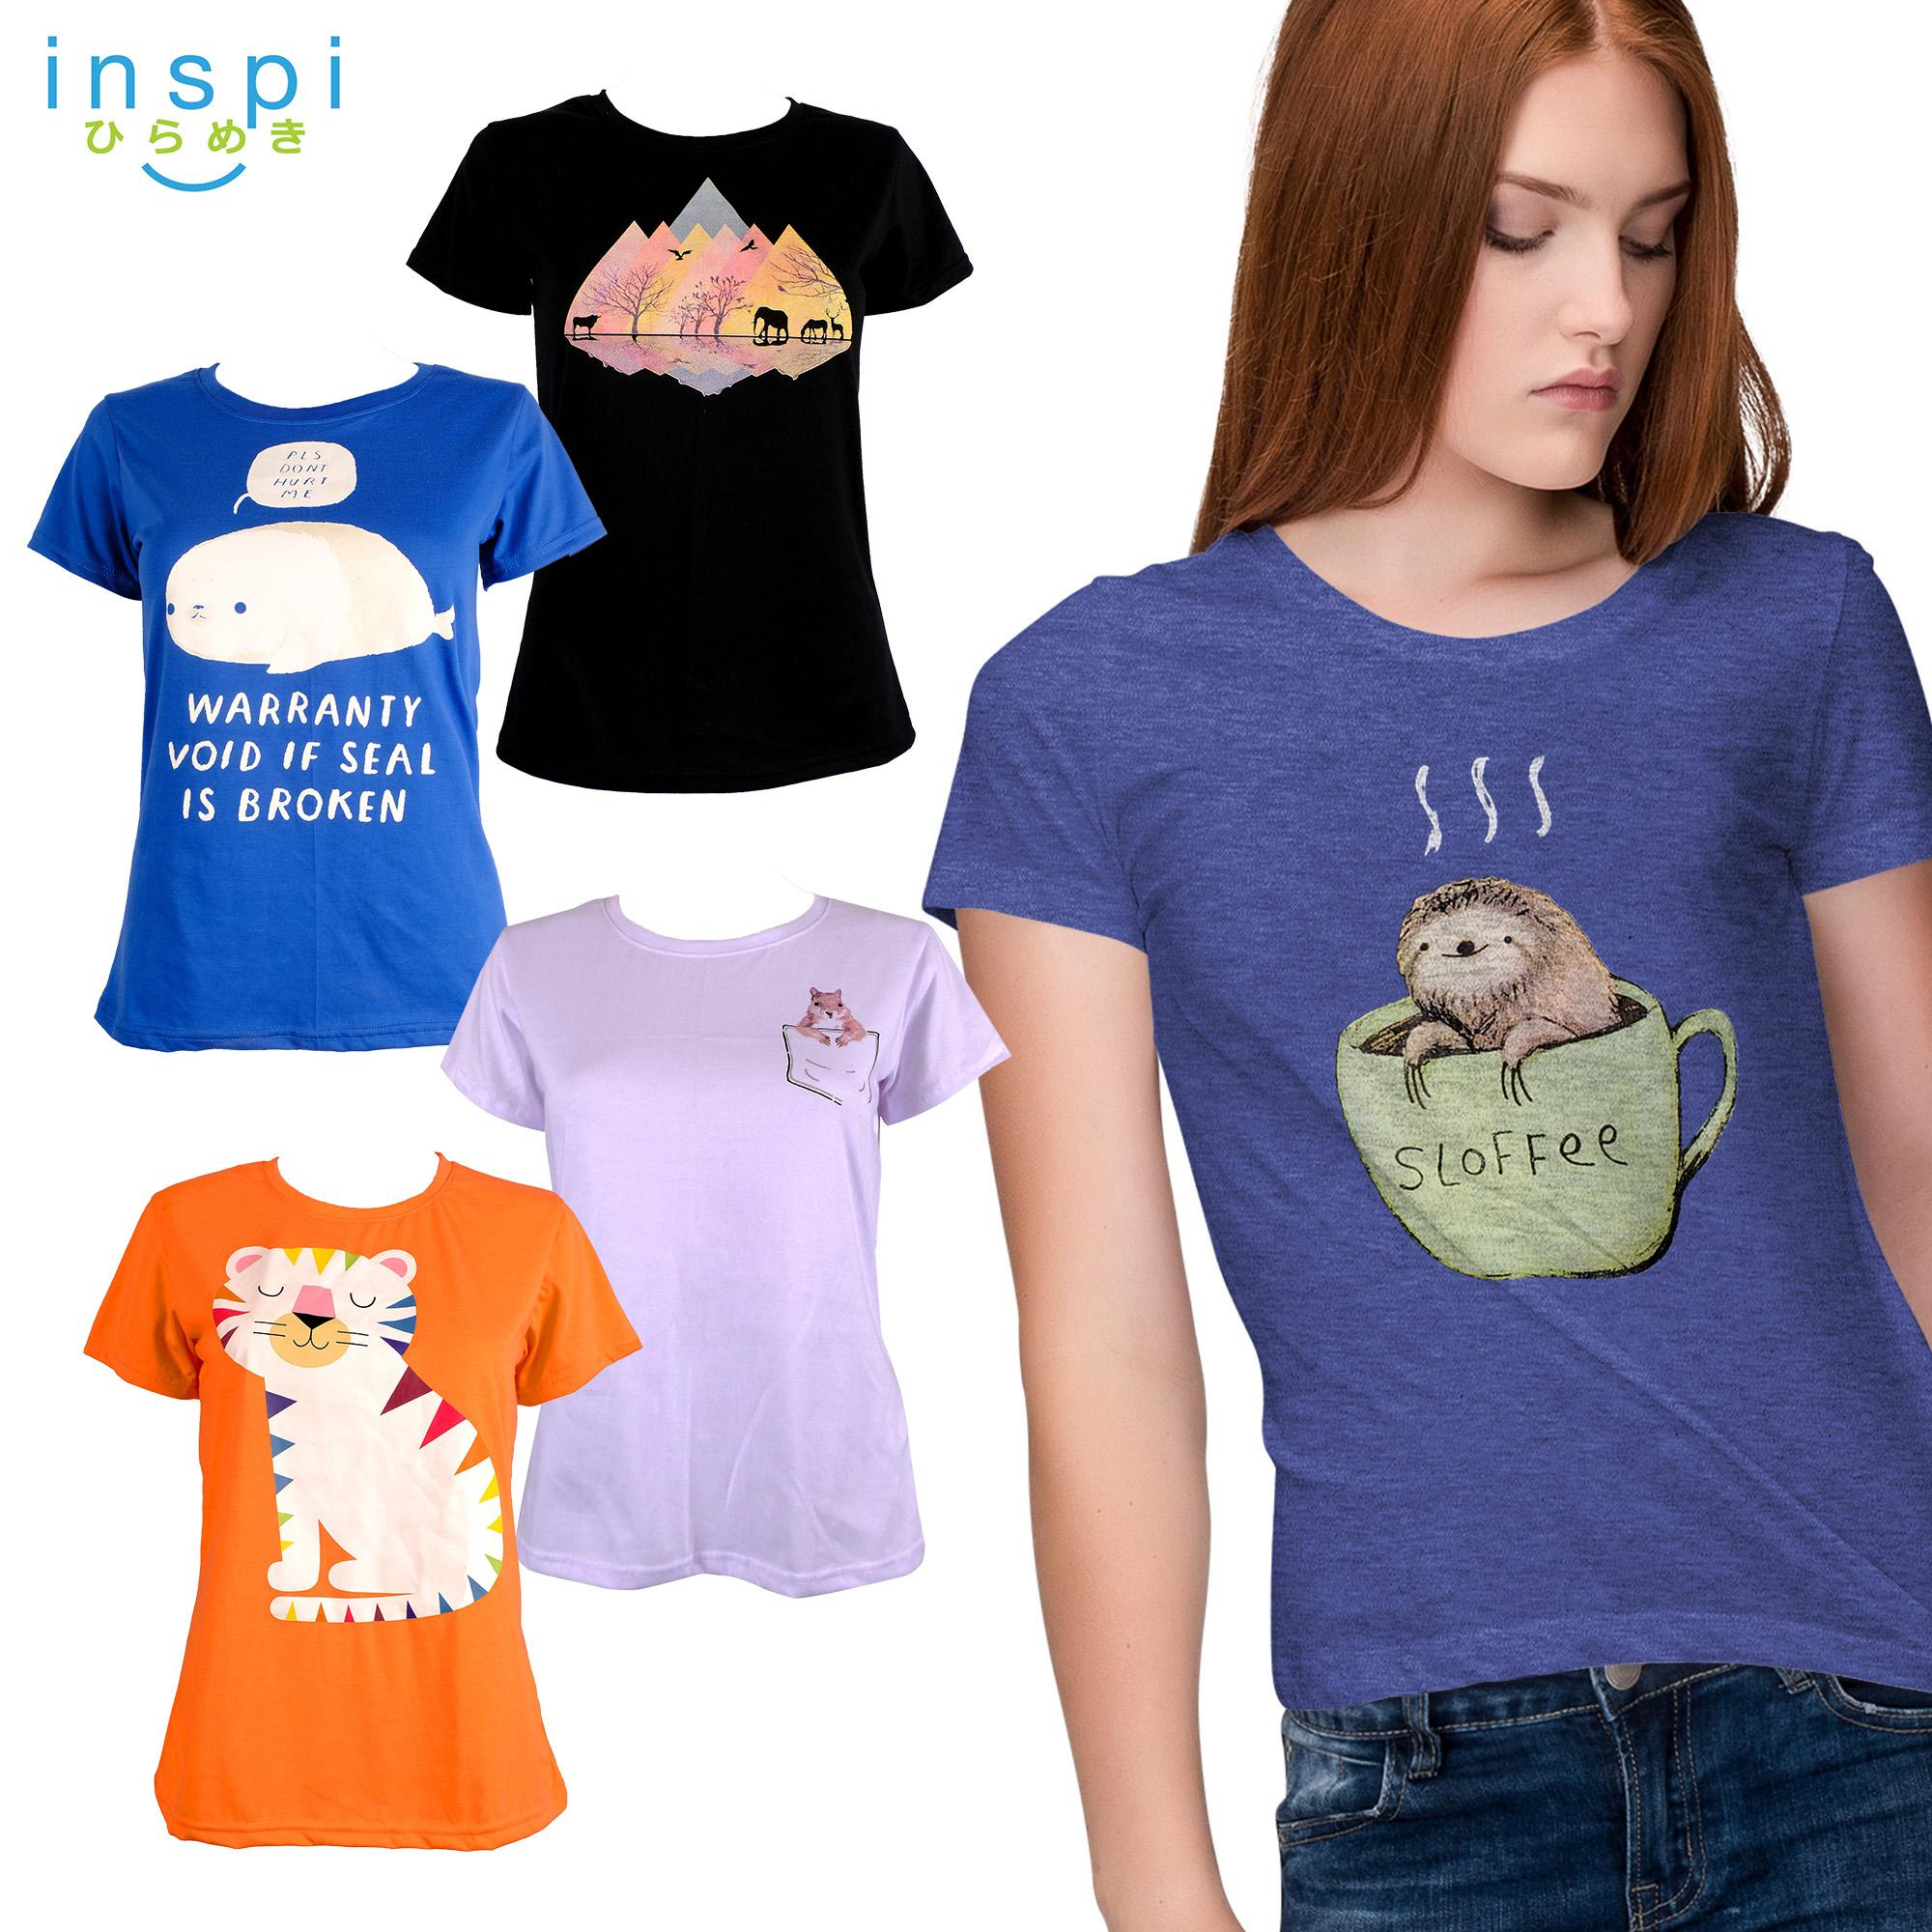 b91df36fa 1600735 items found in Clothing. INSPI Tees Ladies Pet Collection tshirt  printed graphic tee Ladies t shirt shirts women tshirts for